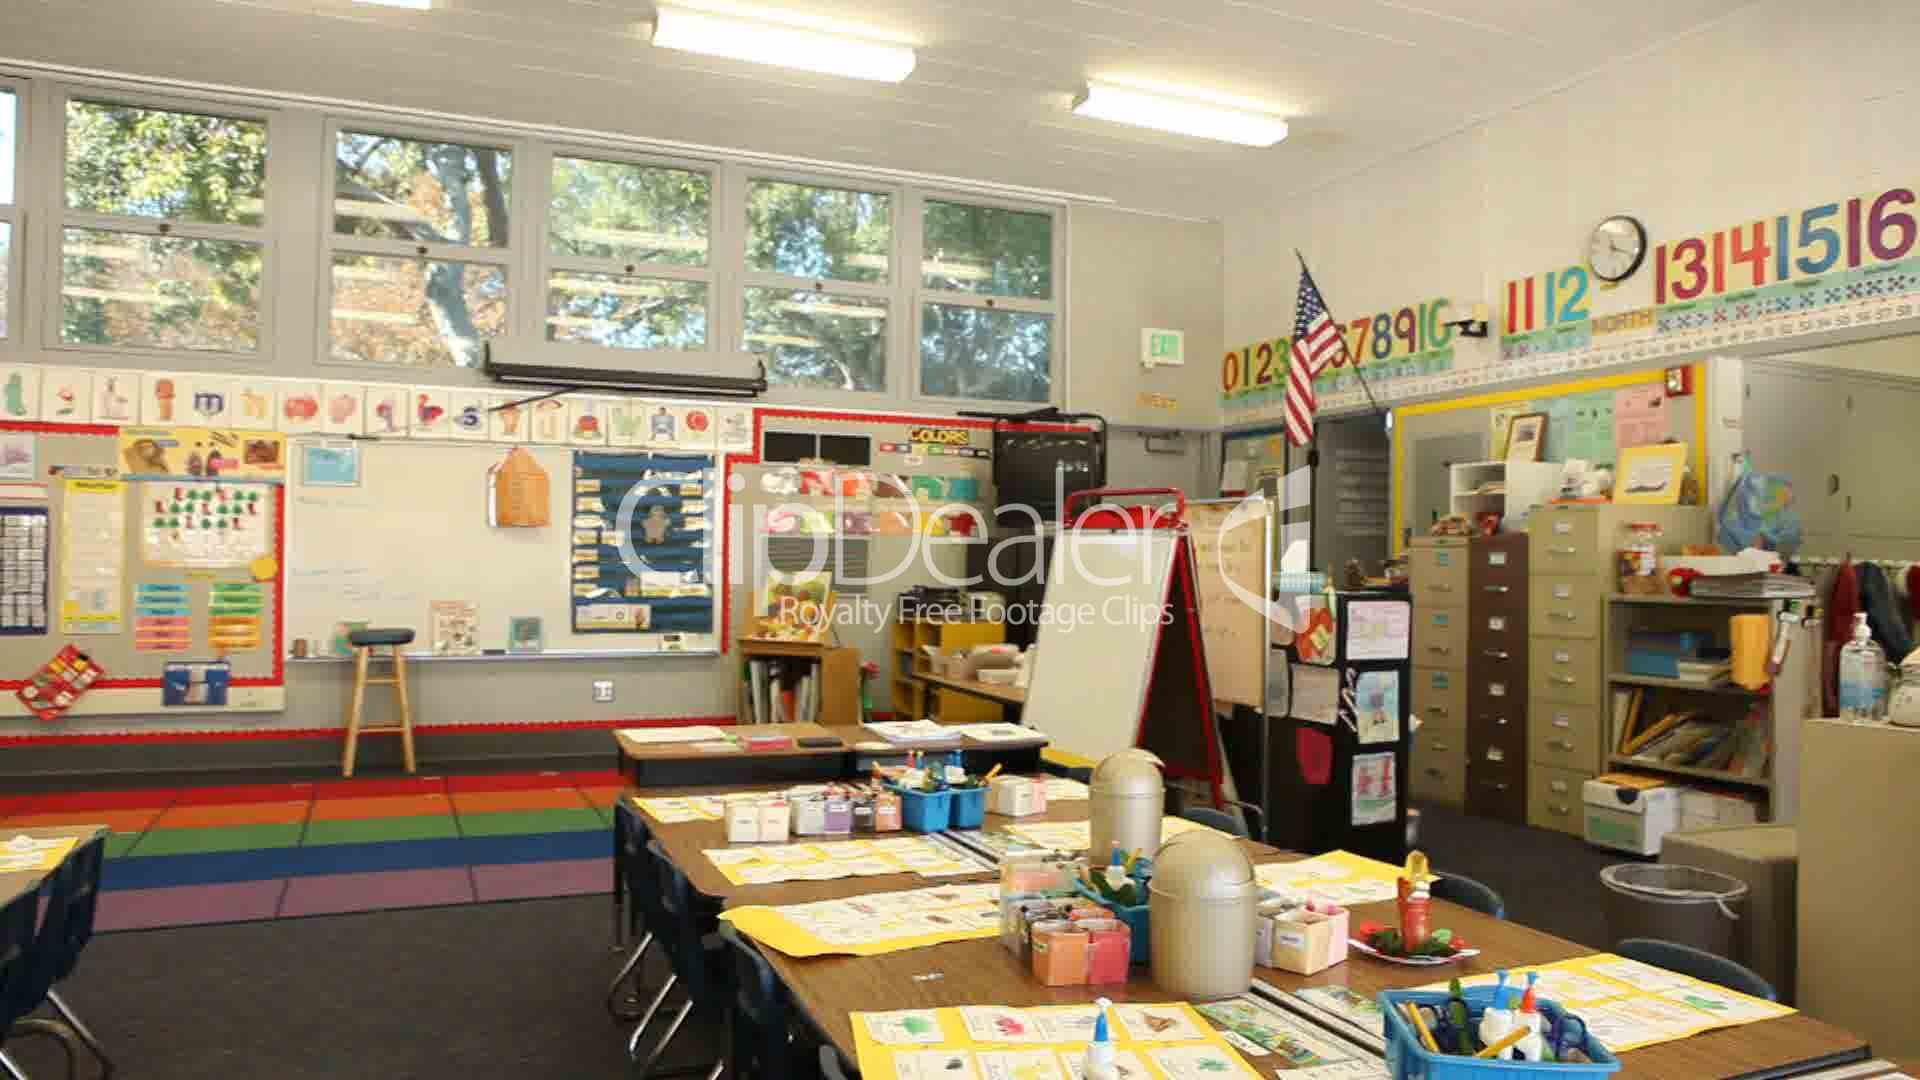 Modern Elementary School Classroom ~ Kindergarten classroom with no children inside royalty